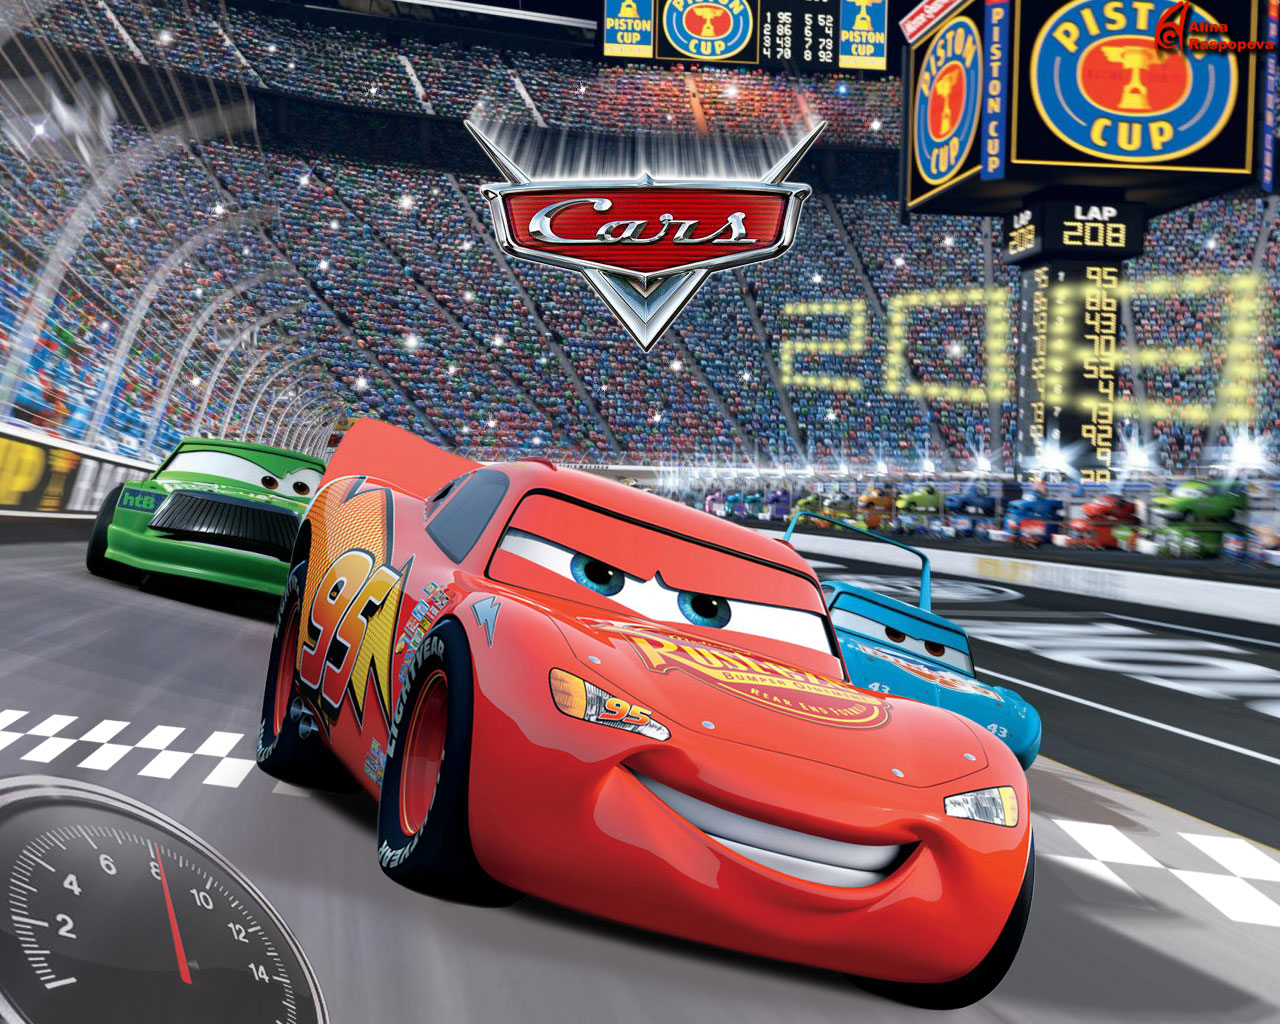 1280x1024 - Wallpaper Cars Cartoon 24